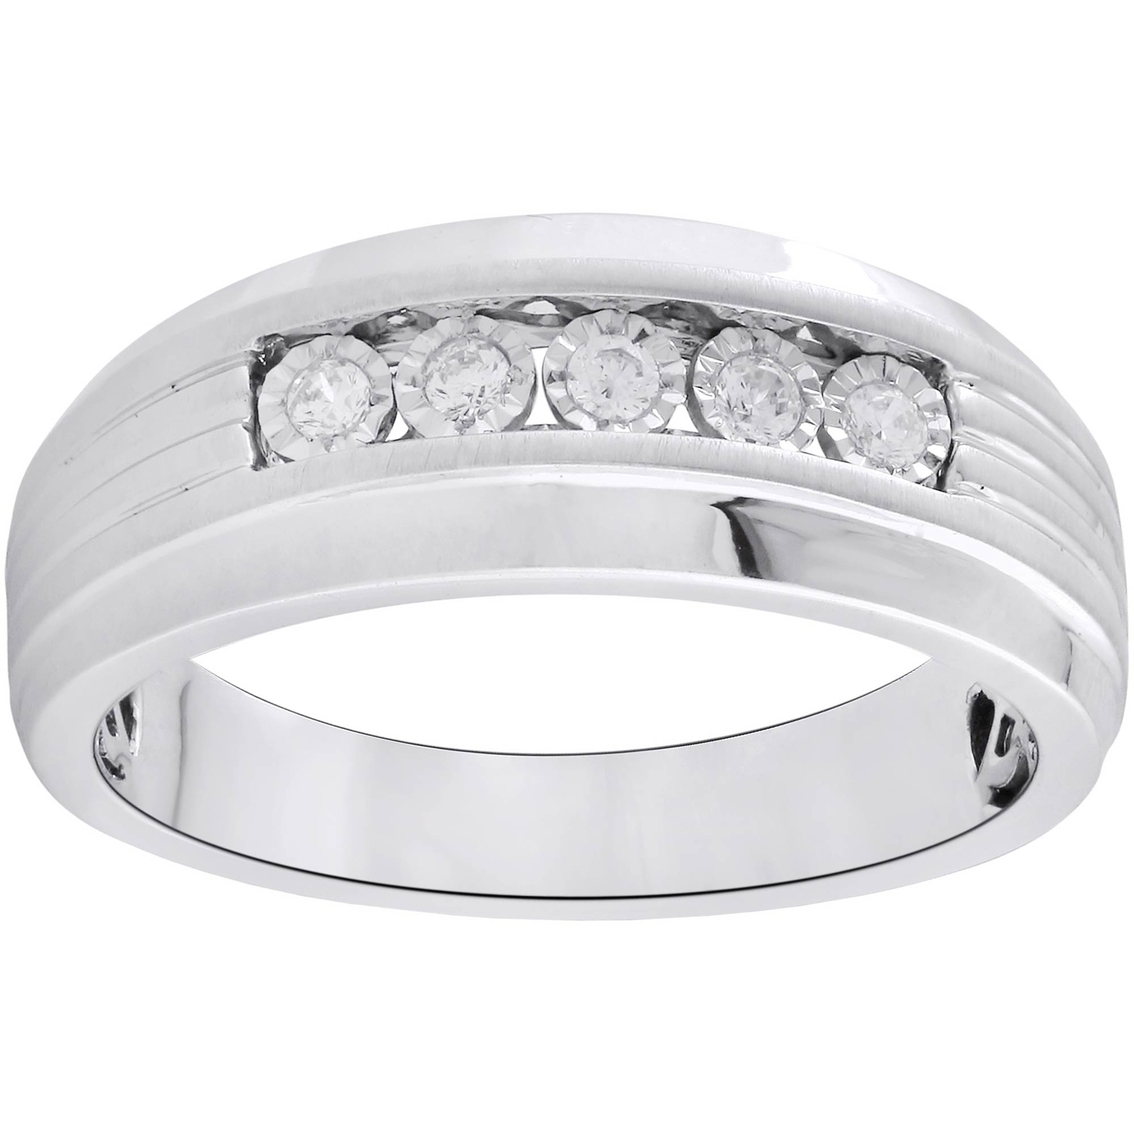 Size 10 5 men 39 s ring for Diamond and jewelry exchange orlando